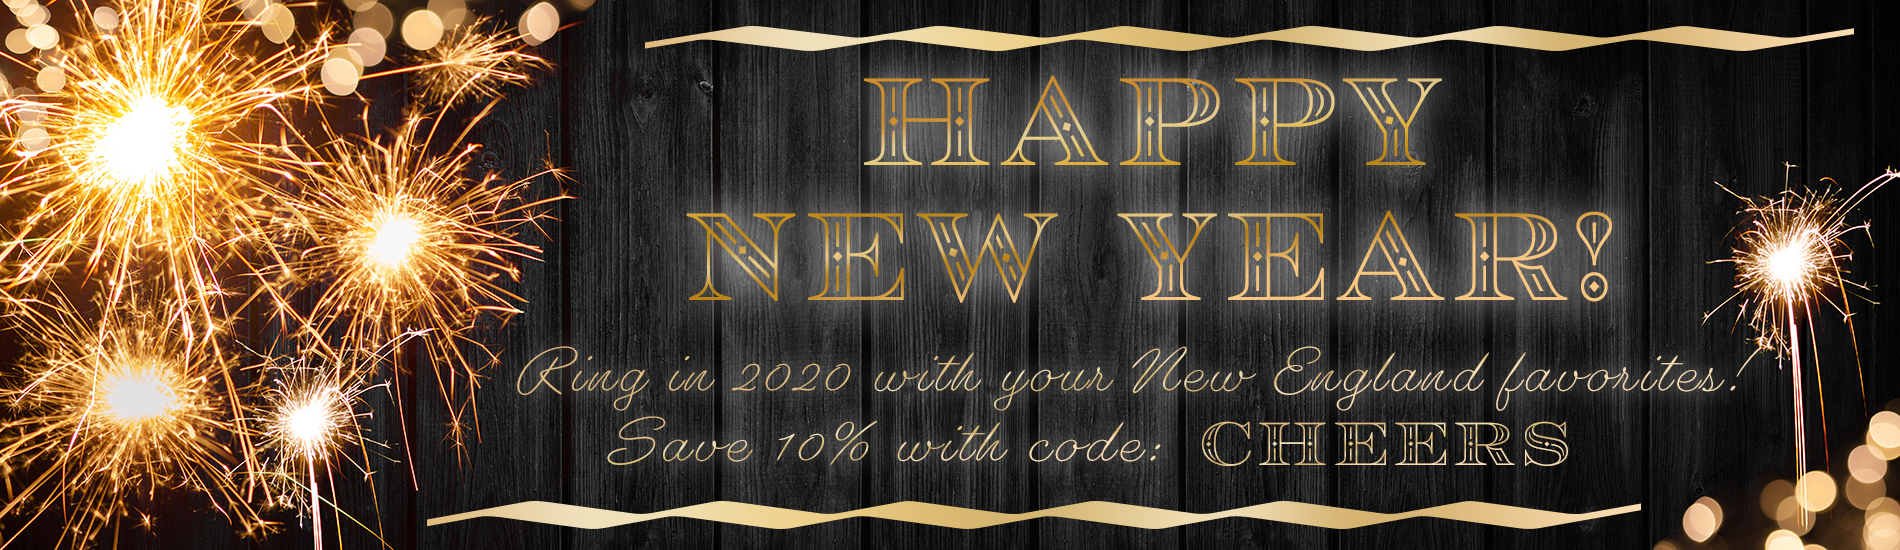 Happy-New-Year-Famous-coupon